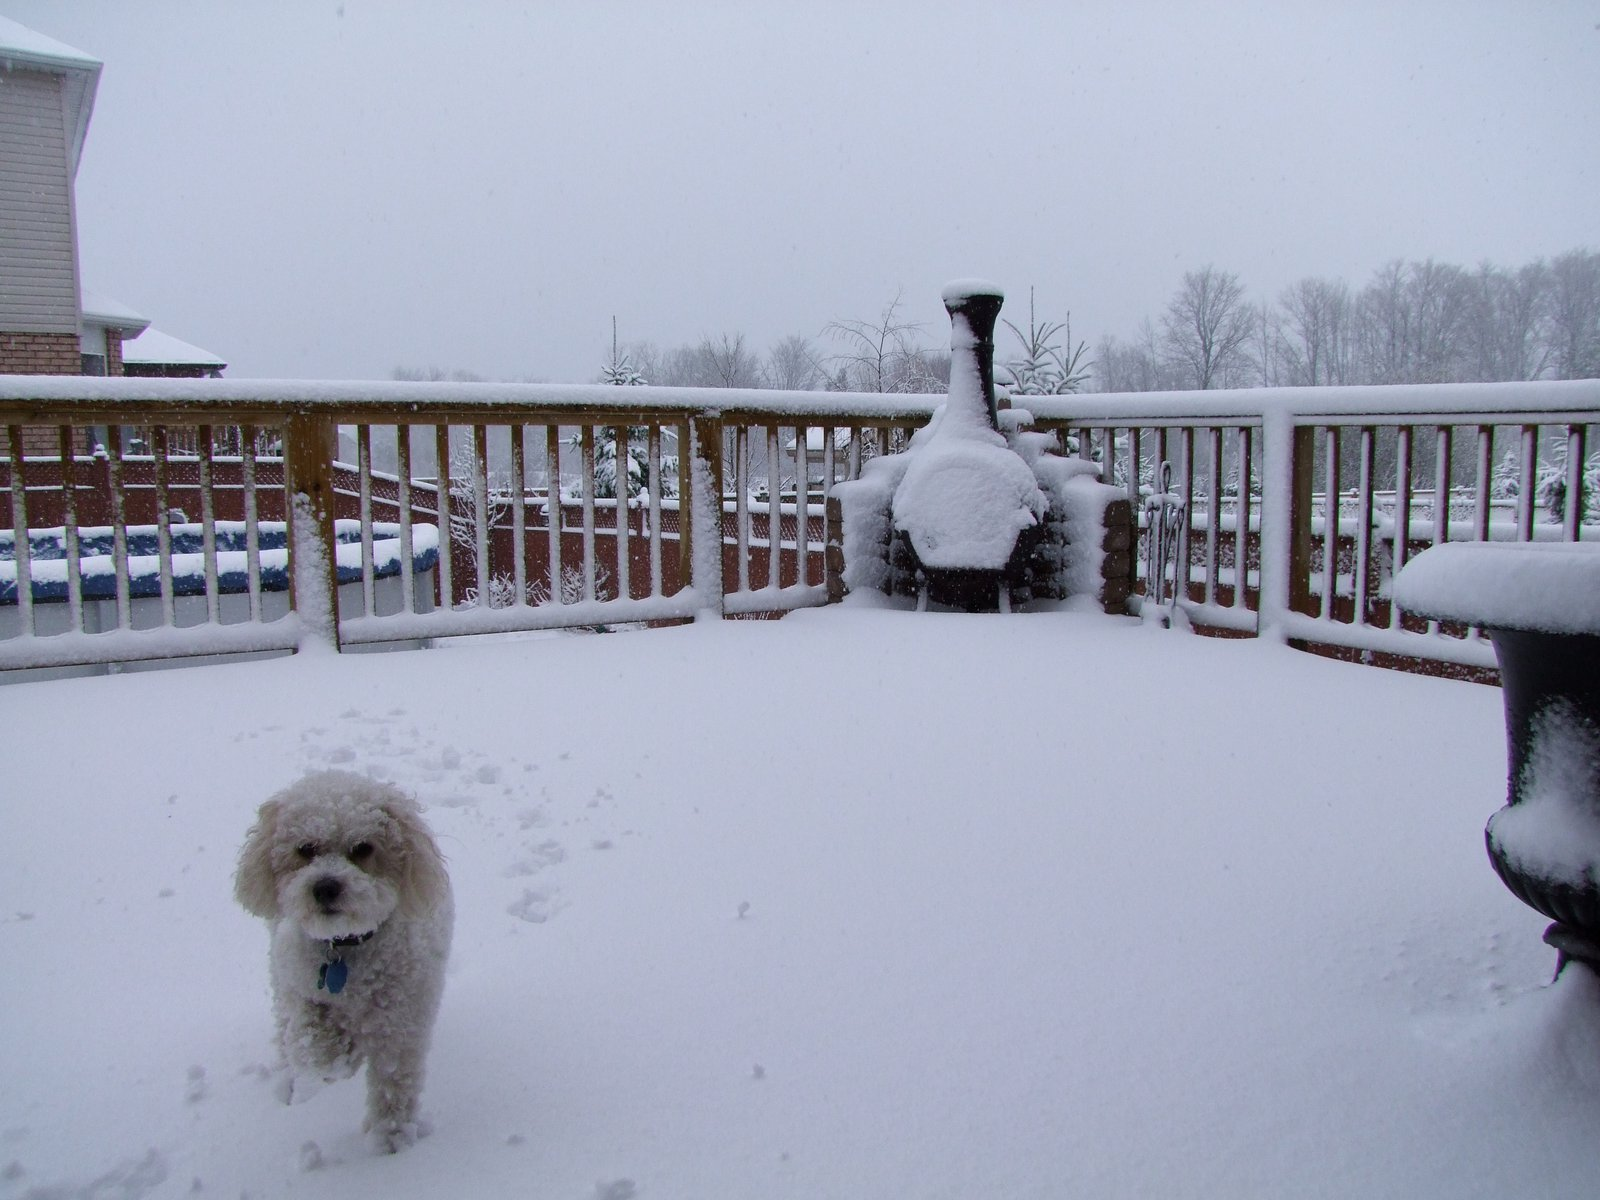 Snow in Ontario - 4 of 5